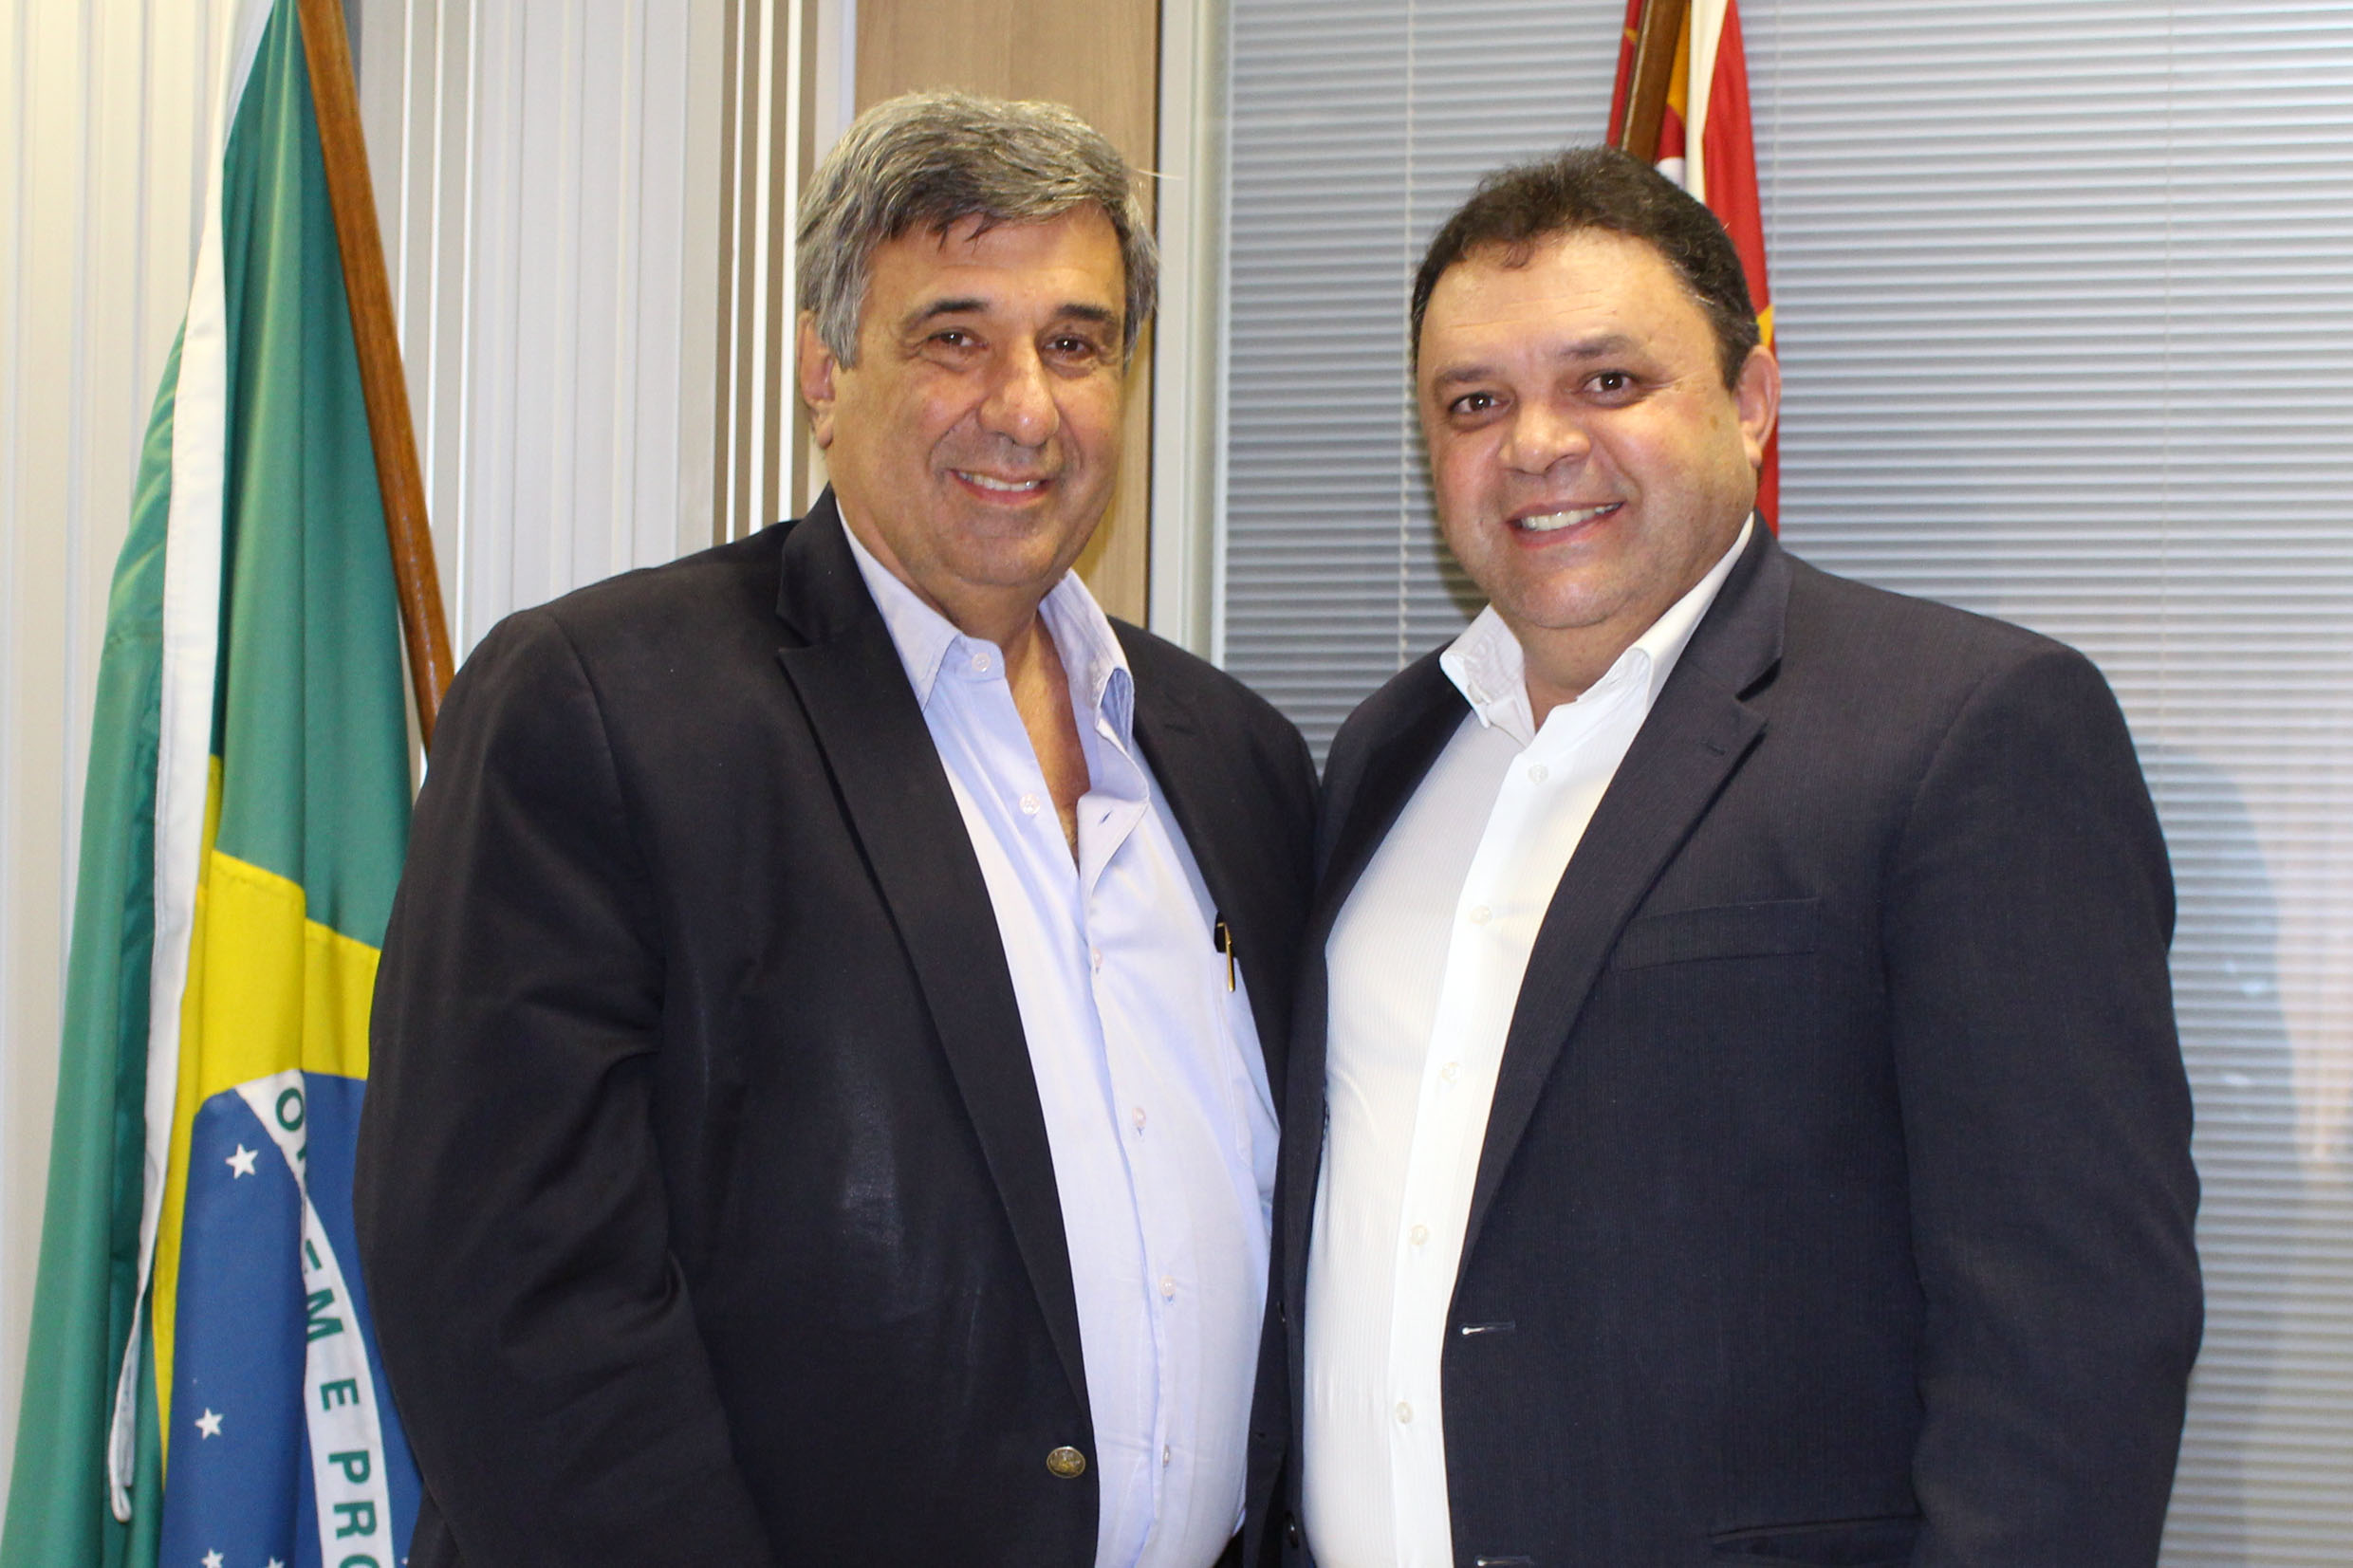 Wilson Pollara e Marcos Damasio<a style='float:right' href='https://www3.al.sp.gov.br/repositorio/noticia/N-04-2019/fg232720.jpg' target=_blank><img src='/_img/material-file-download-white.png' width='14px' alt='Clique para baixar a imagem'></a>